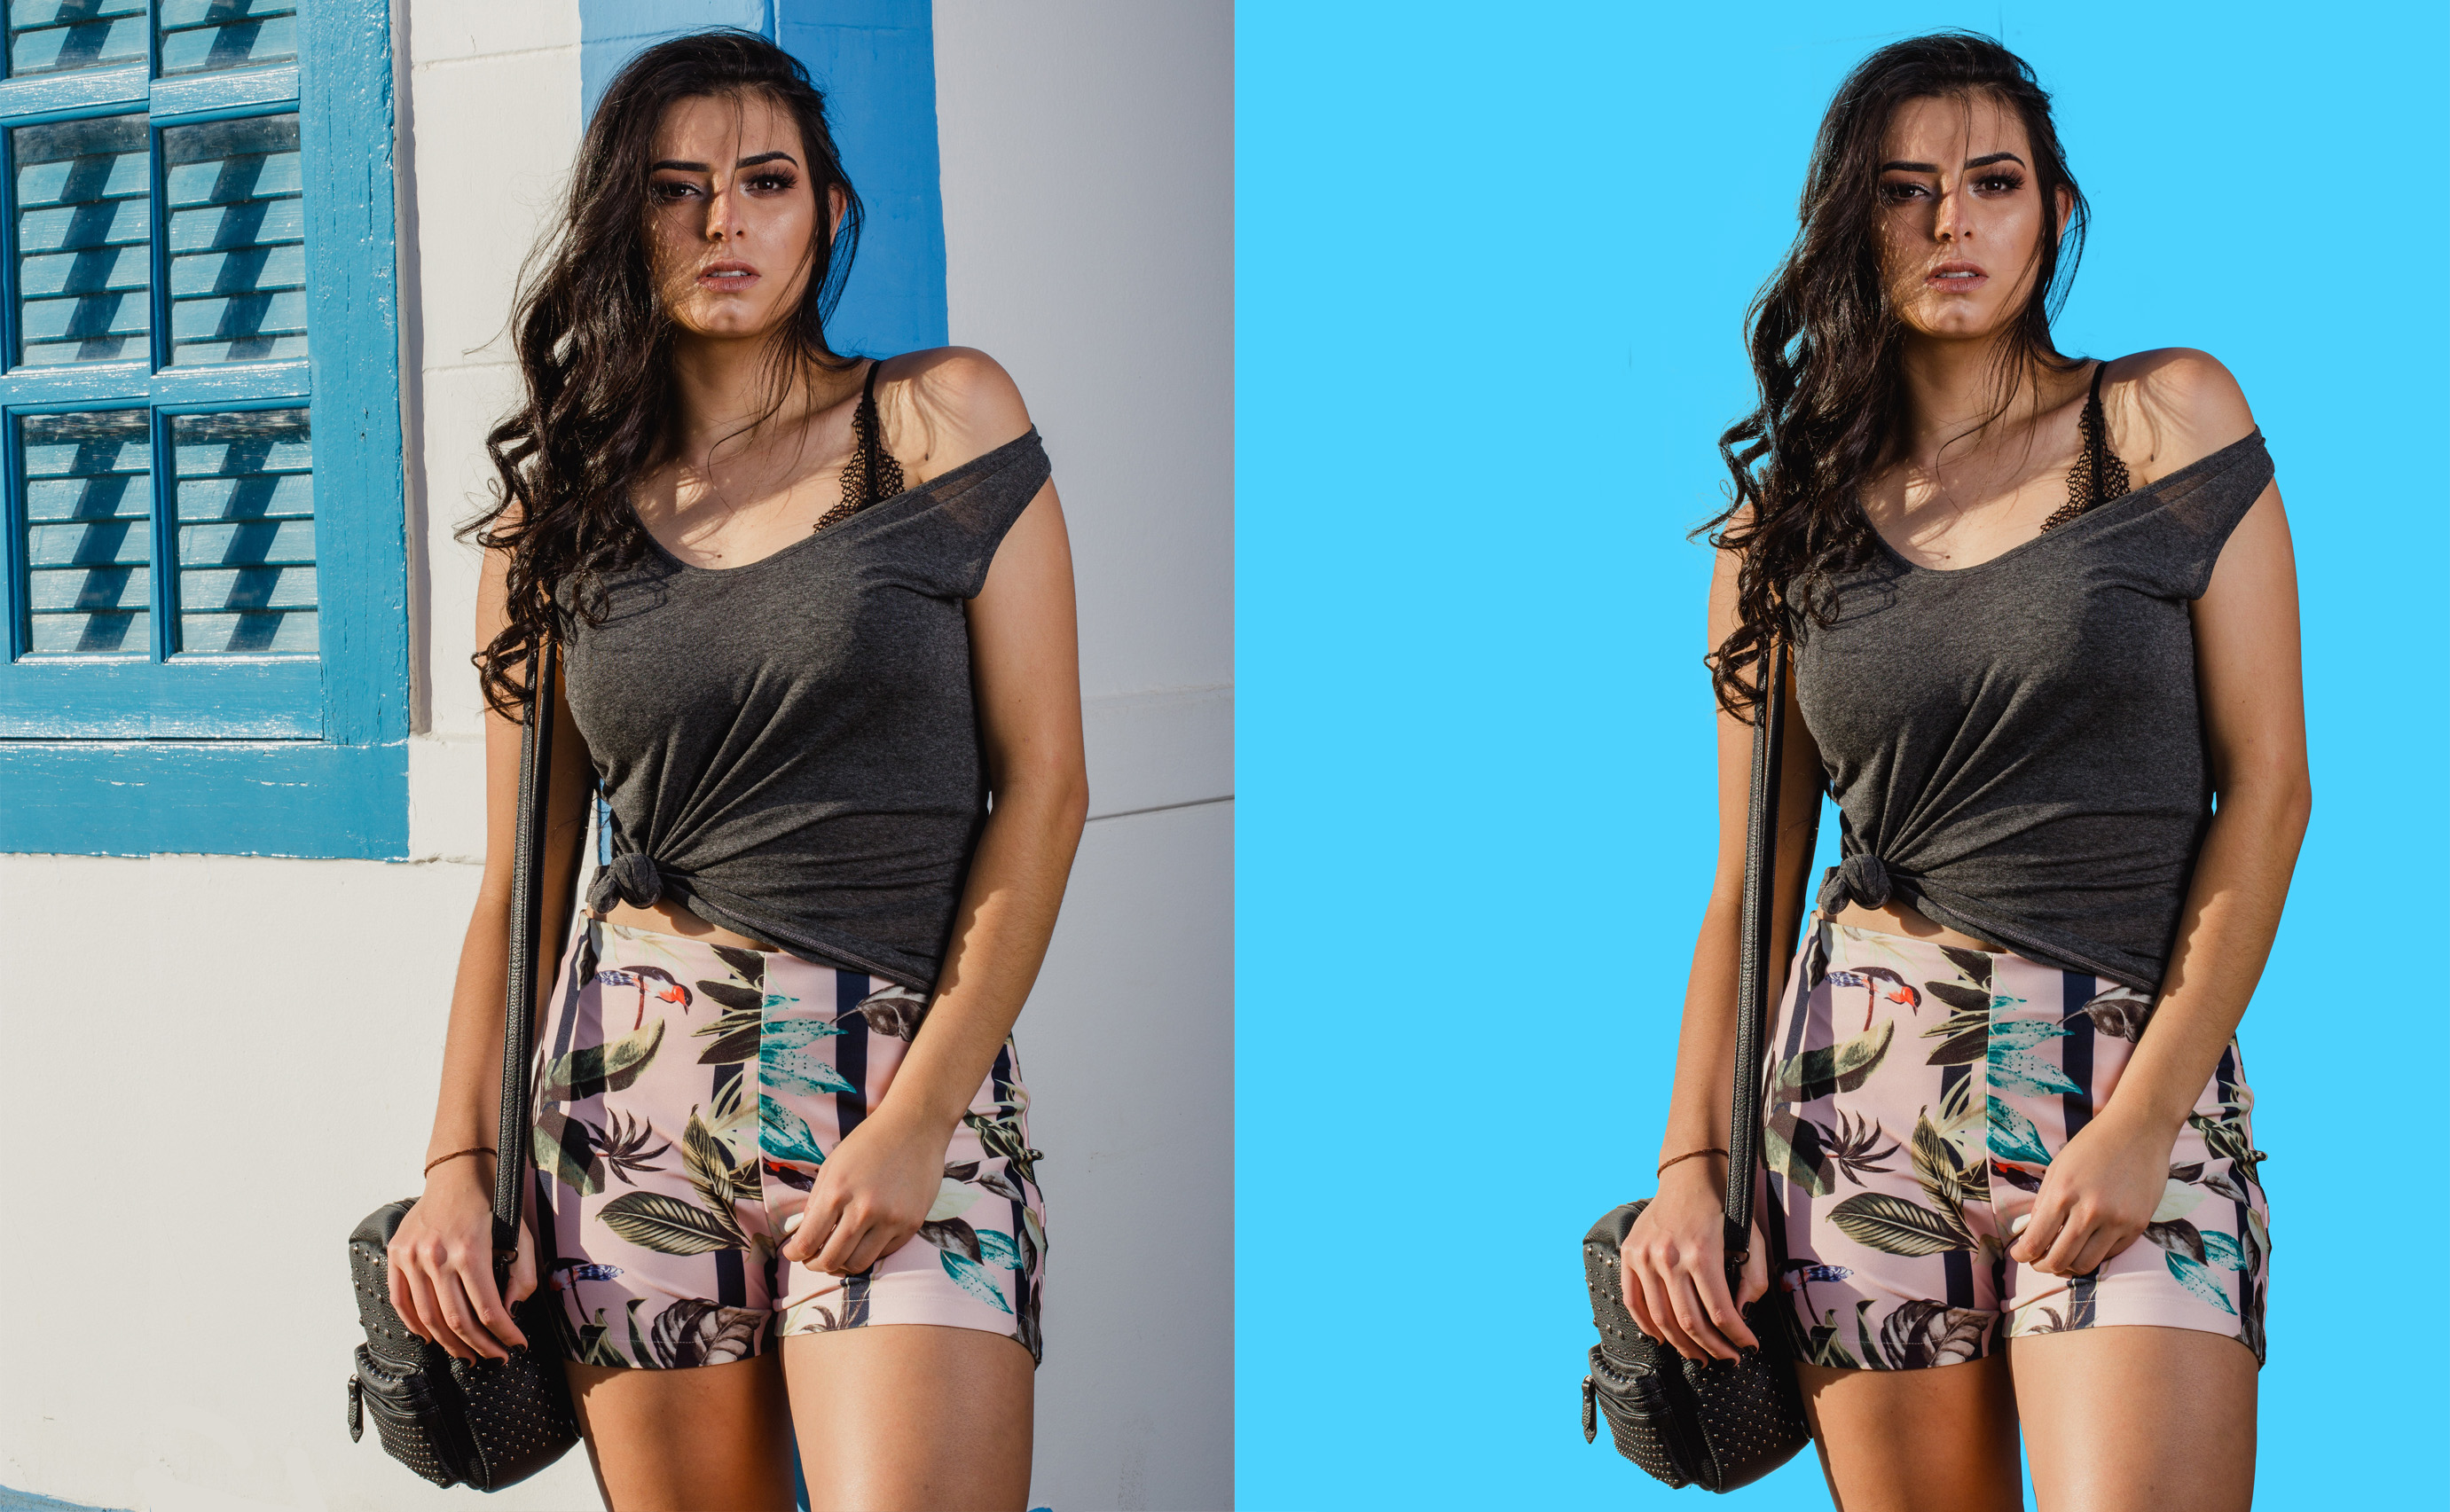 I will remove unwanted background from your photo